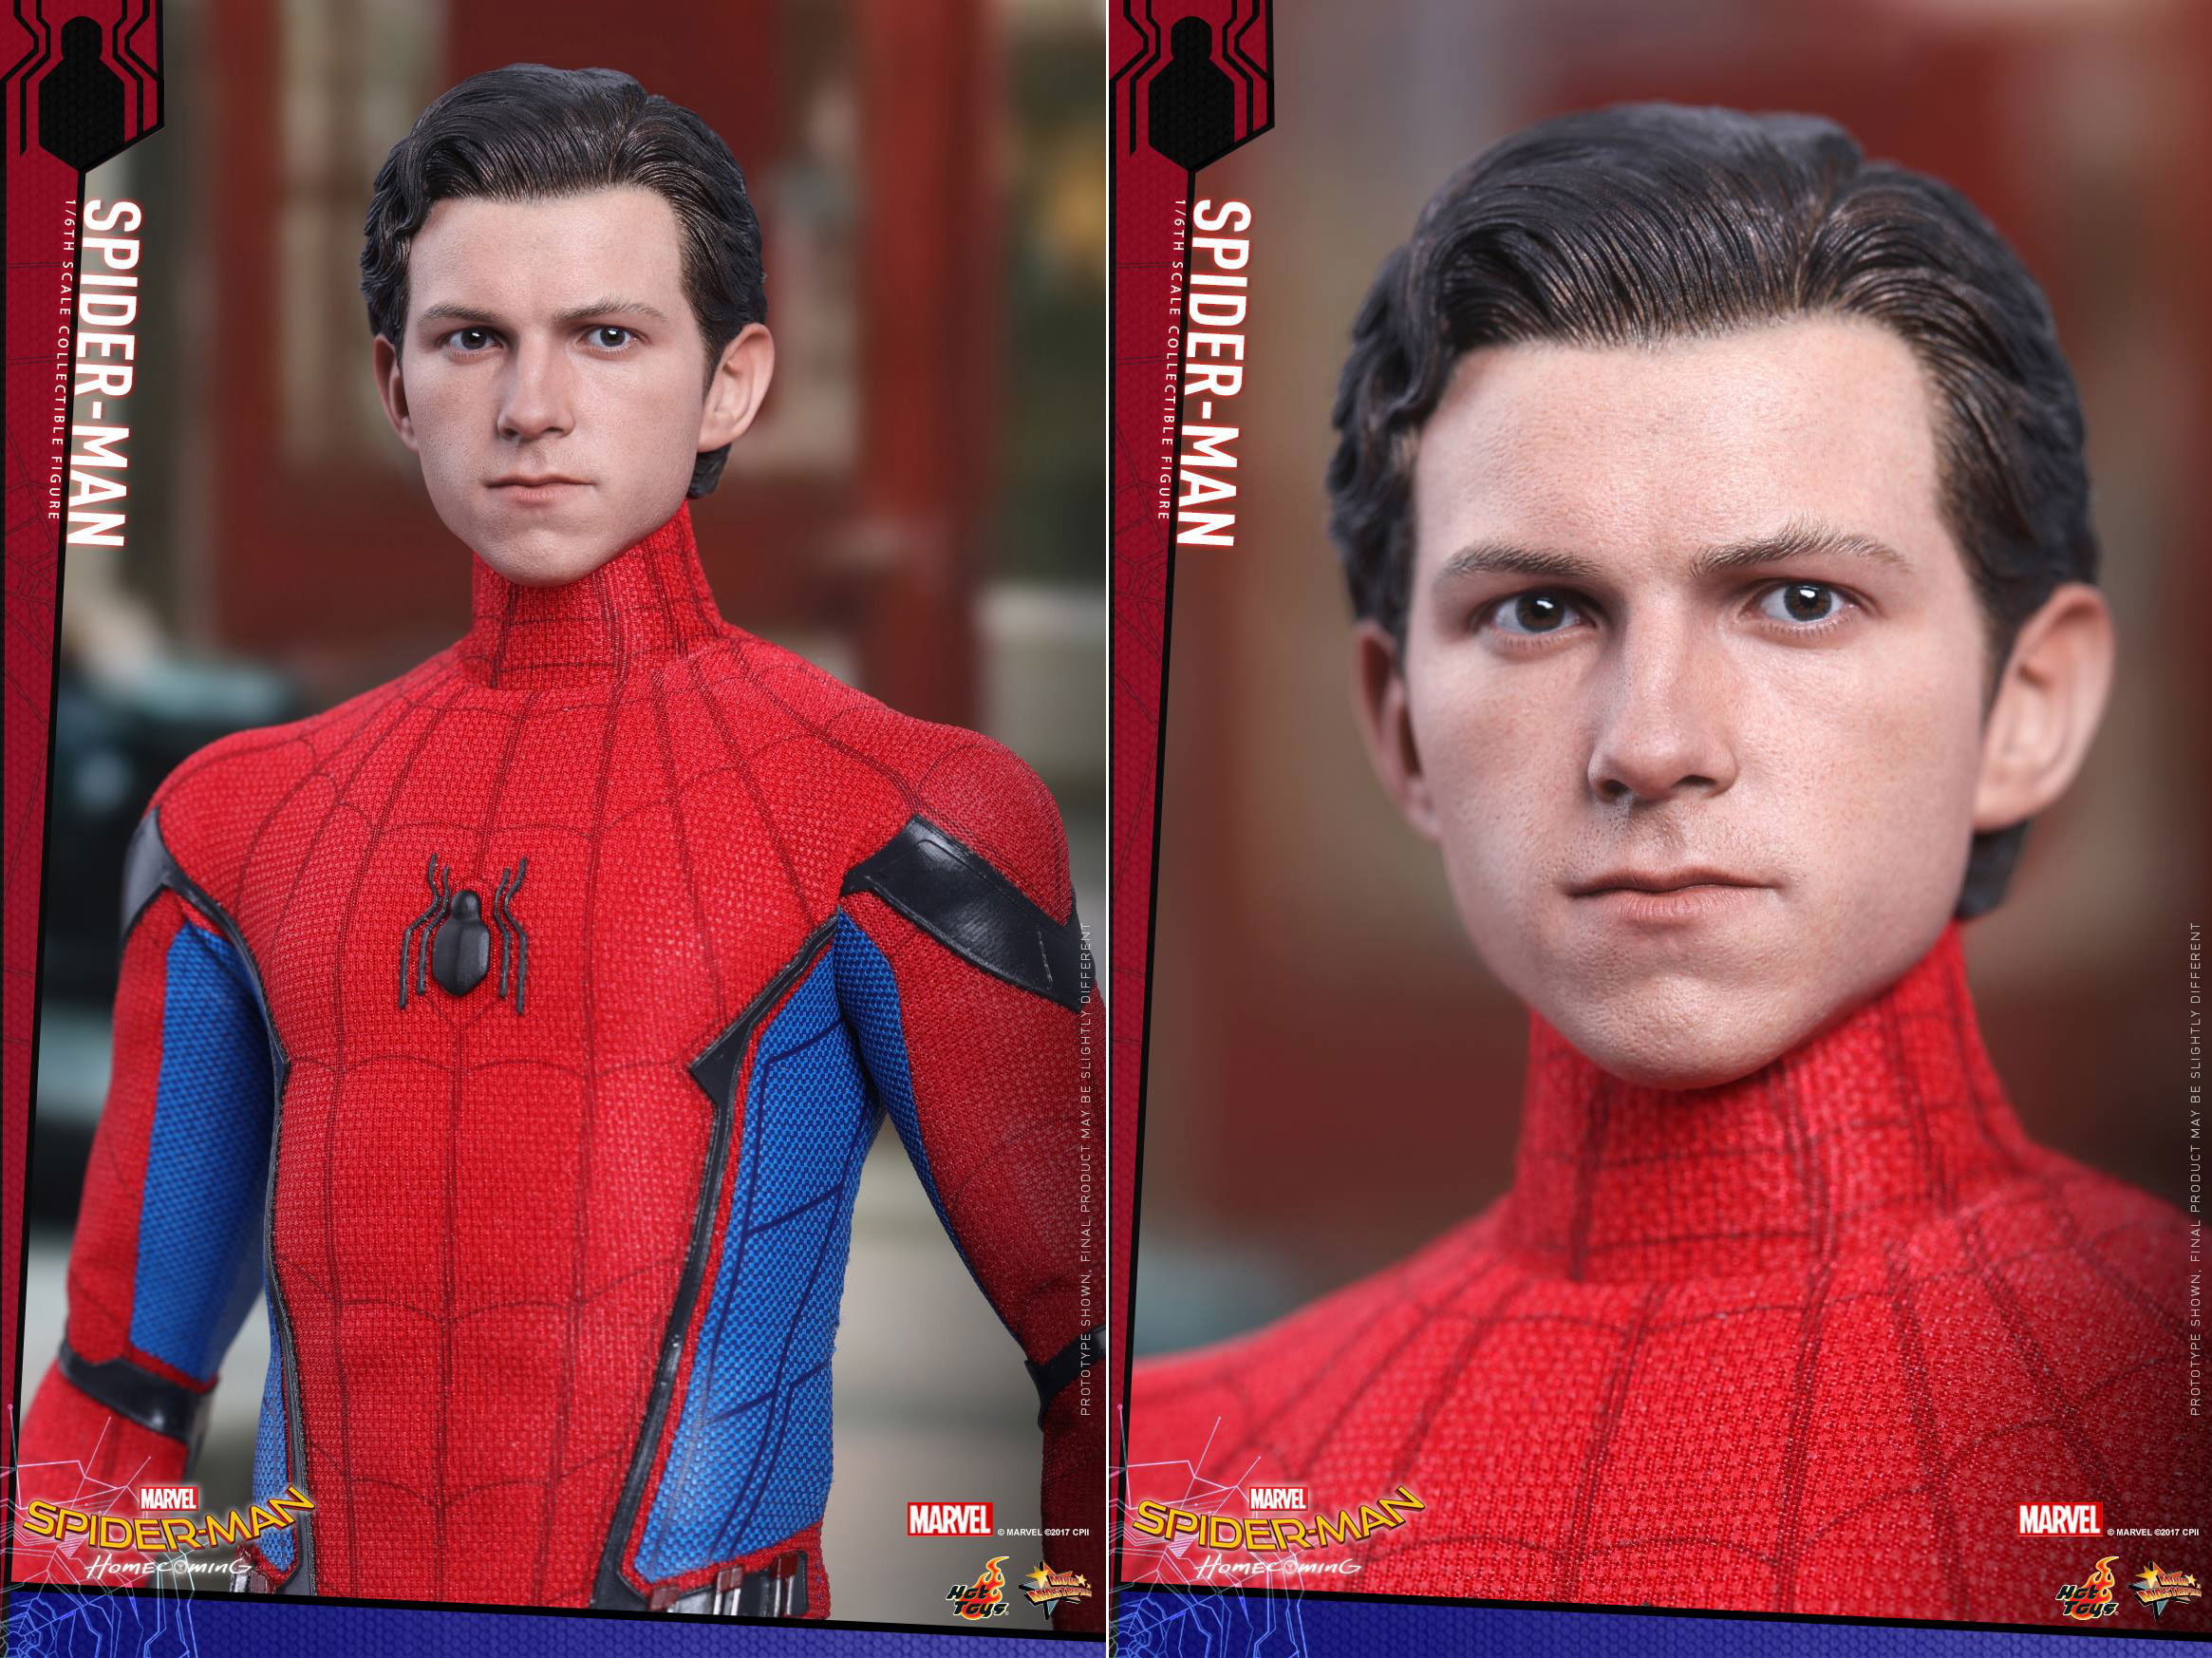 hot-toys-spider-man-homecoming-figure-unmasked-head-sculpt-3